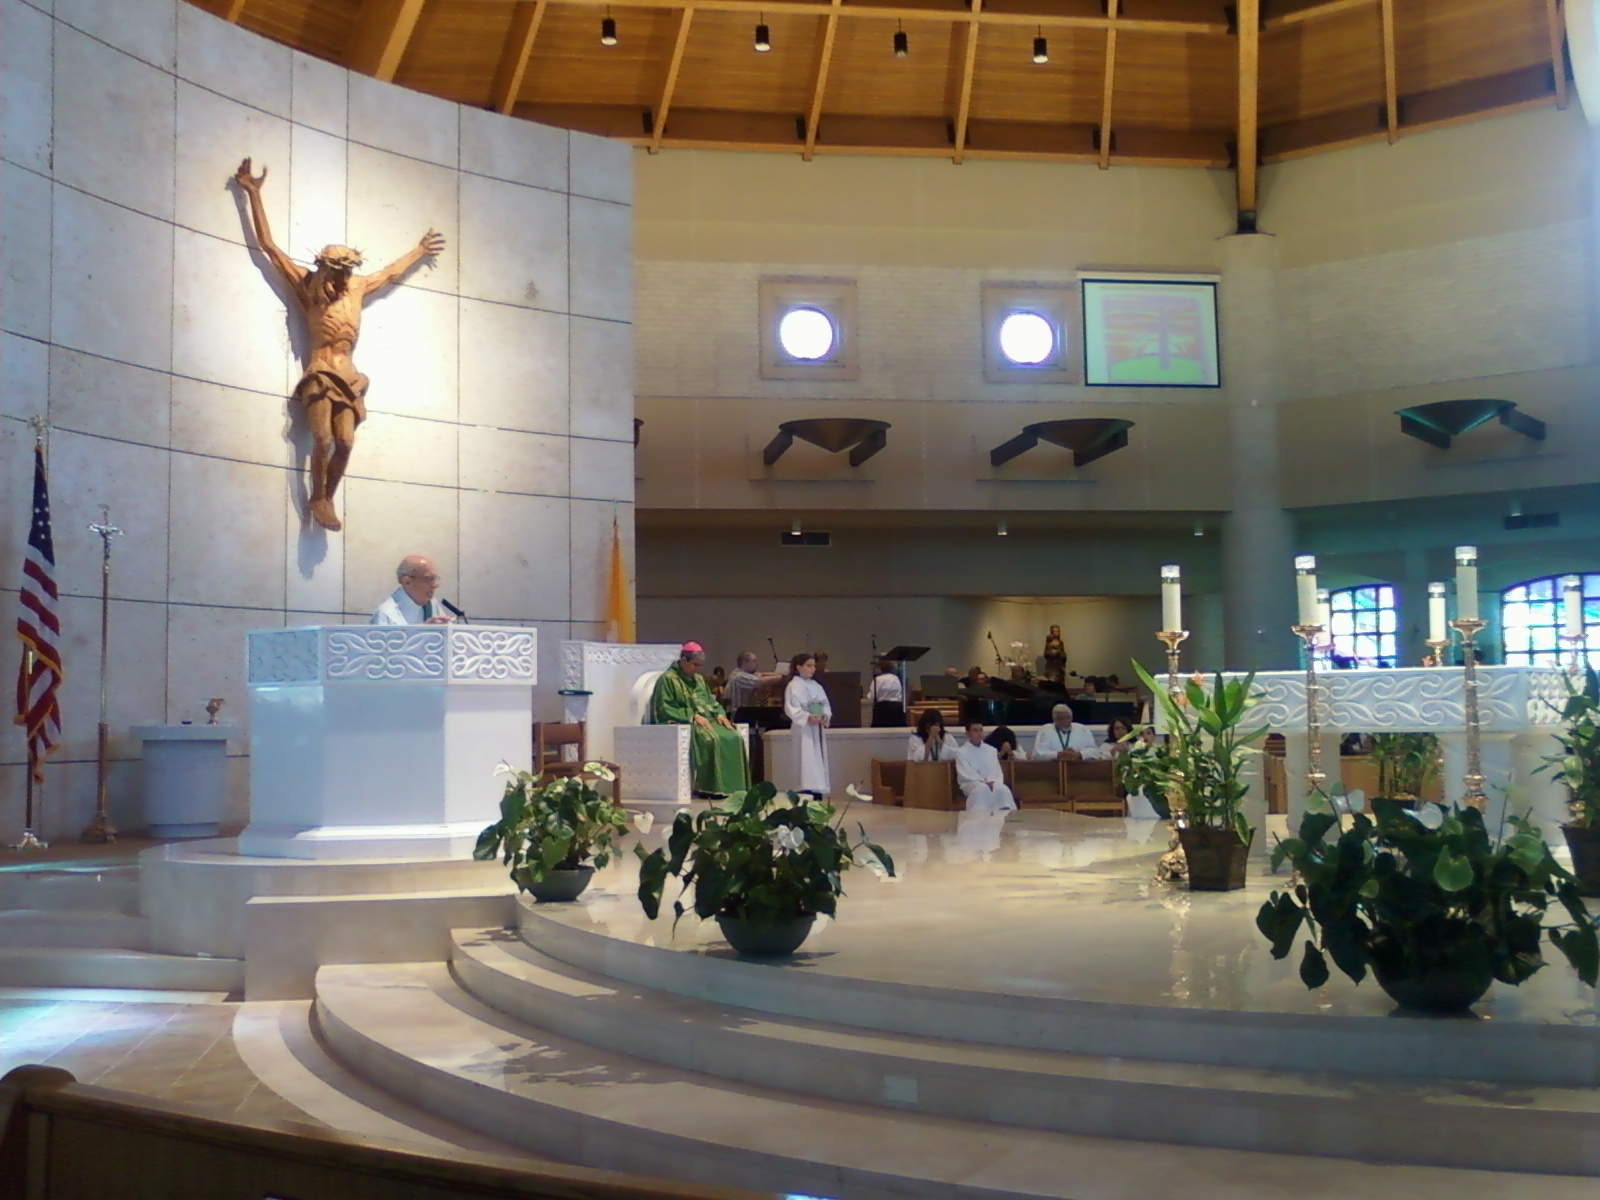 saint marks catholic singles The mission of st mark the evangelist catholic church is trinitarian in nature,  that is, it reflects the presence and action of the father, son, and holy spirit: to.